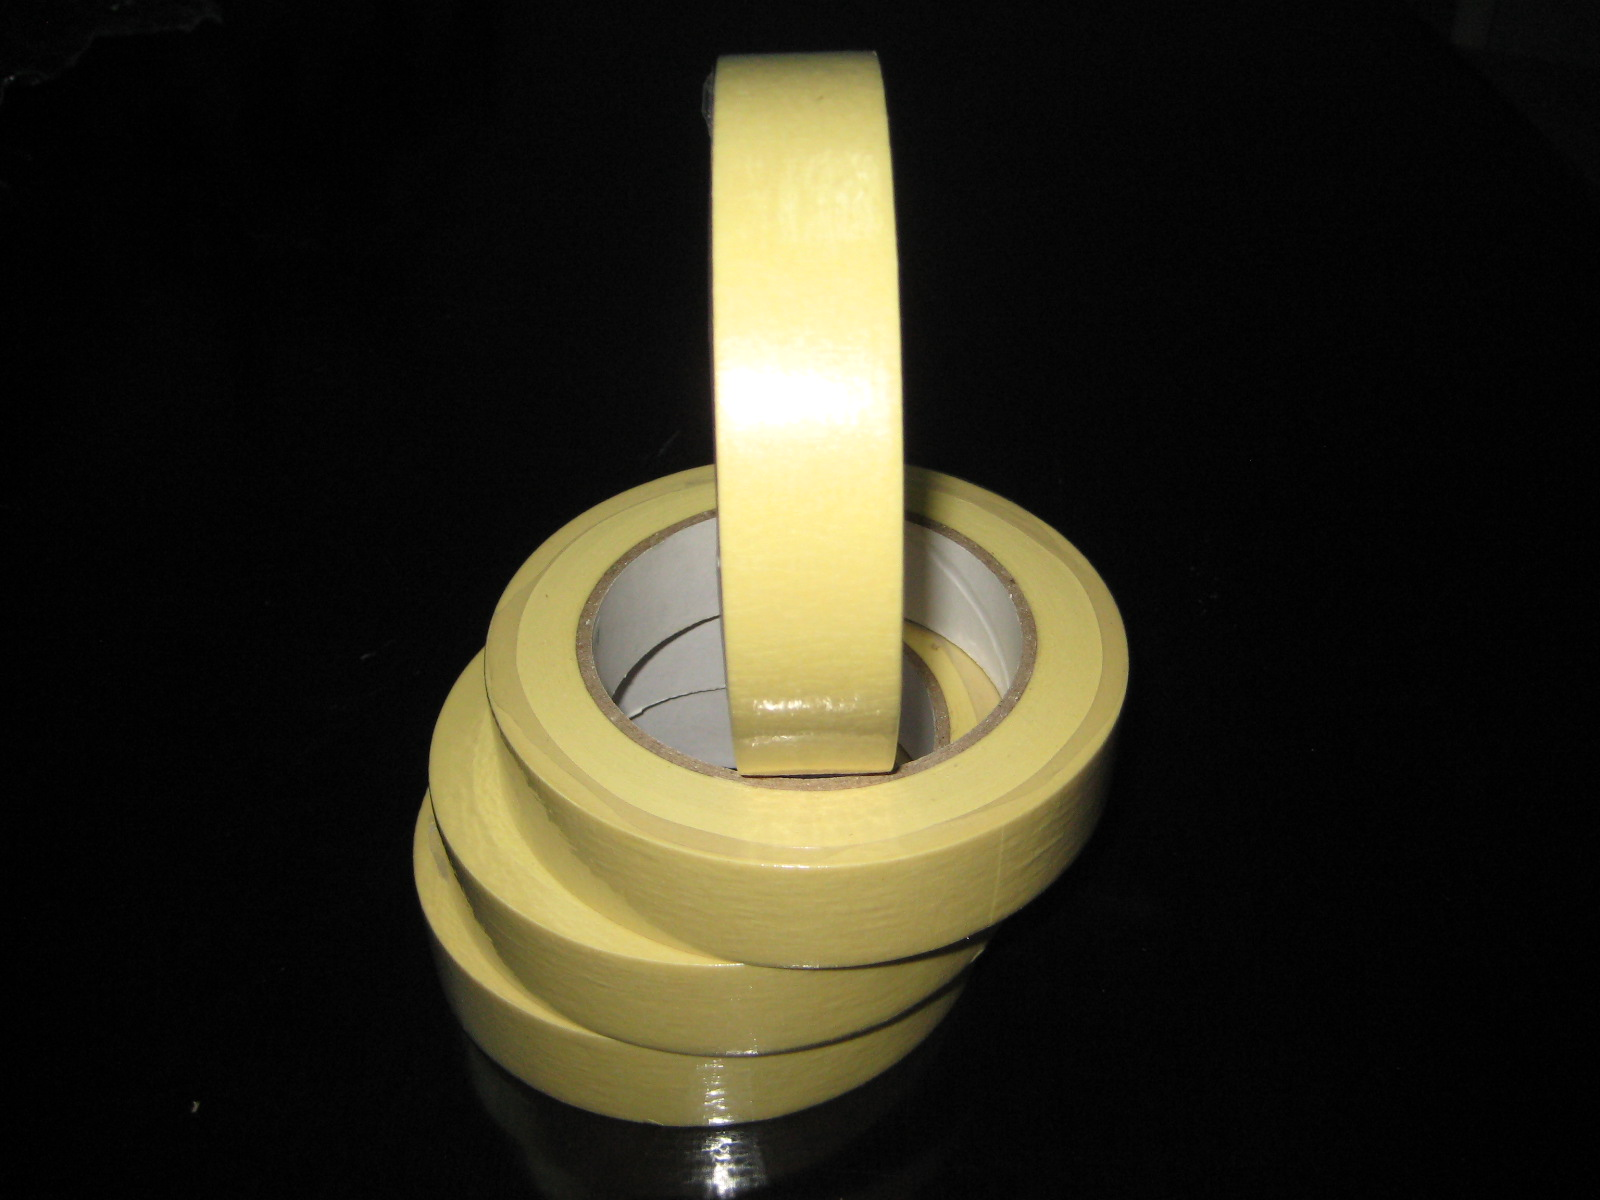 General Purpose Masking Tape Precision Outdoor U-9